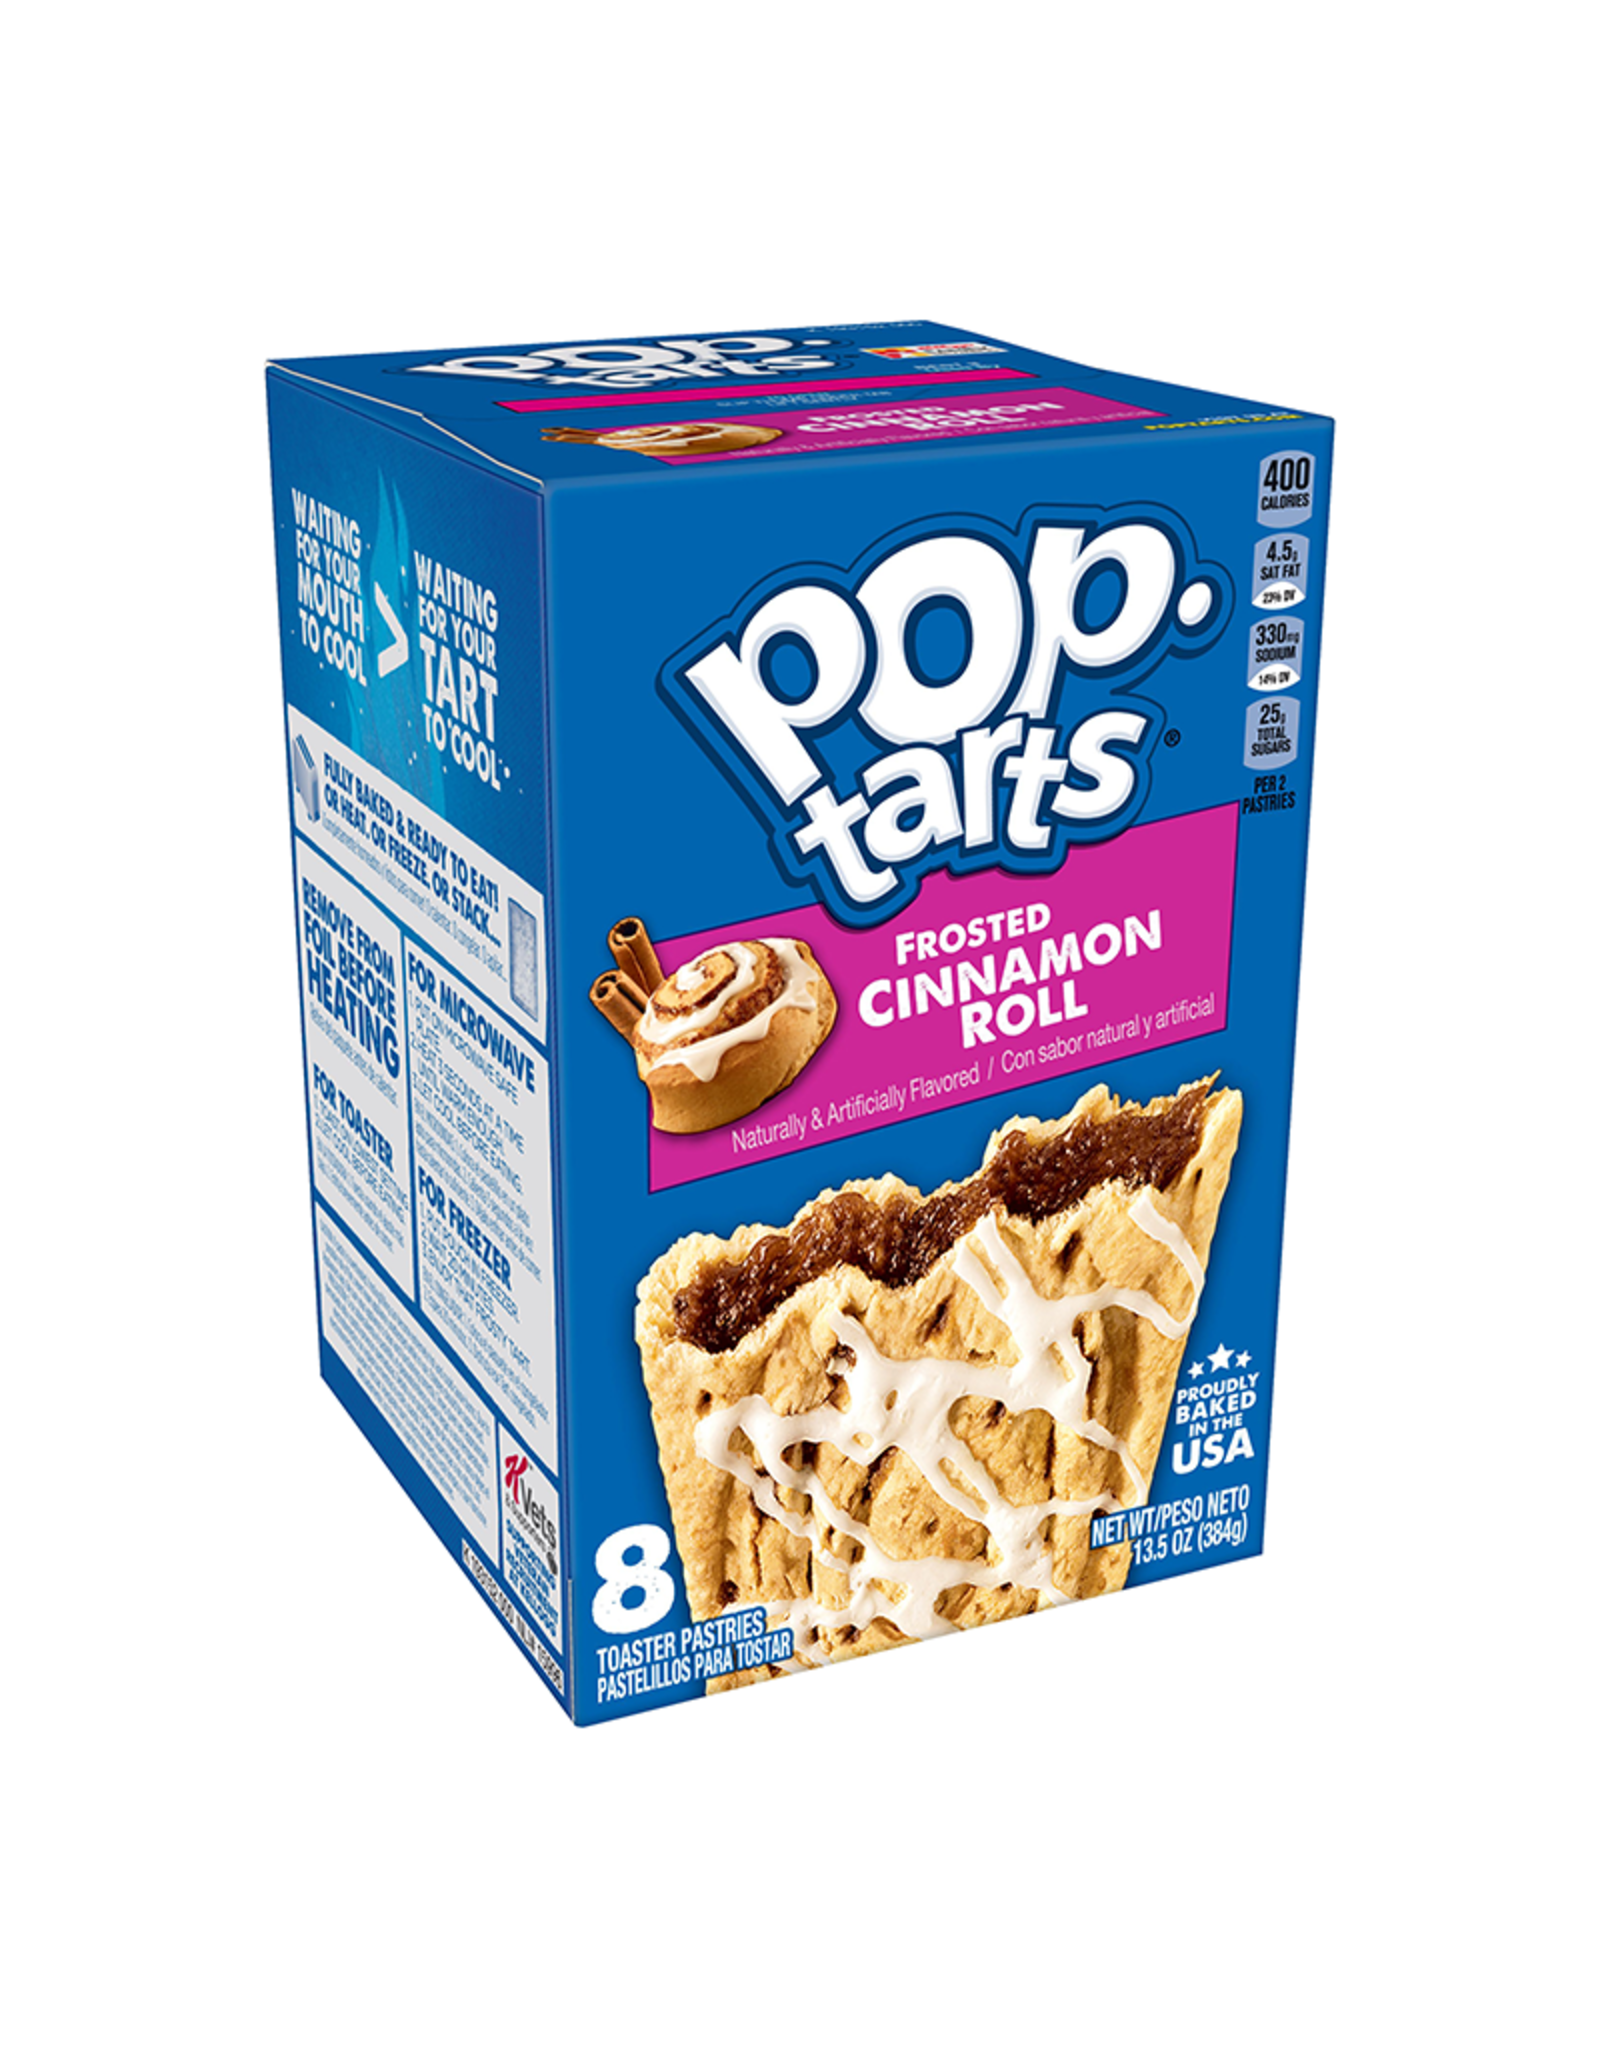 Pop-Tarts Frosted Cinnamon Roll - 8 Pack - 384g